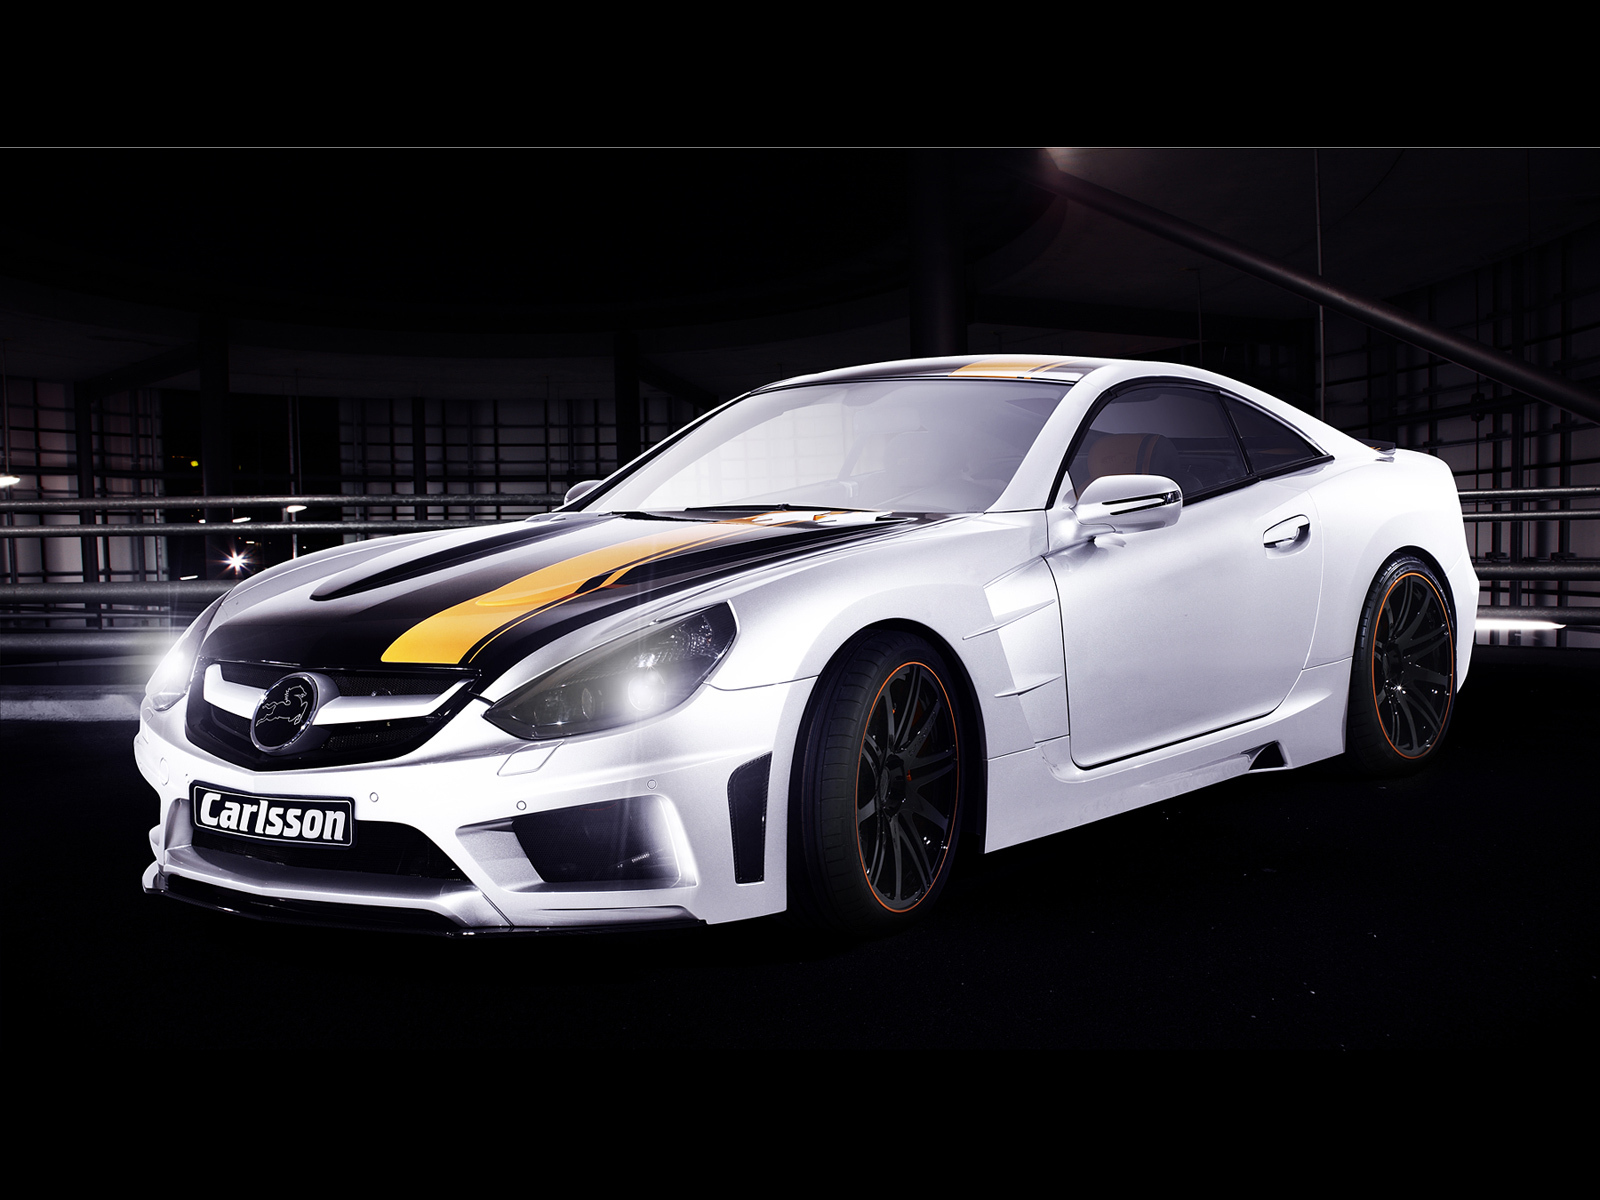 Carlsson Wallpaper